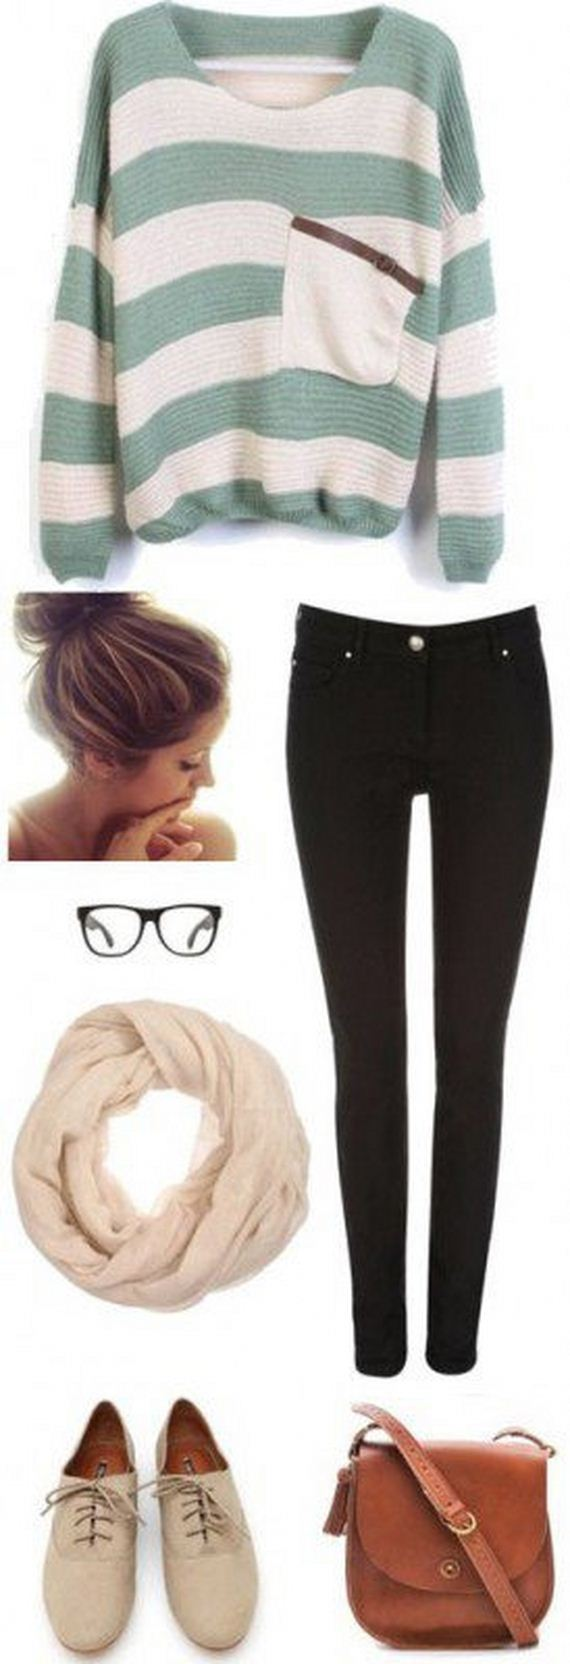 08-Cute-Outfits-School